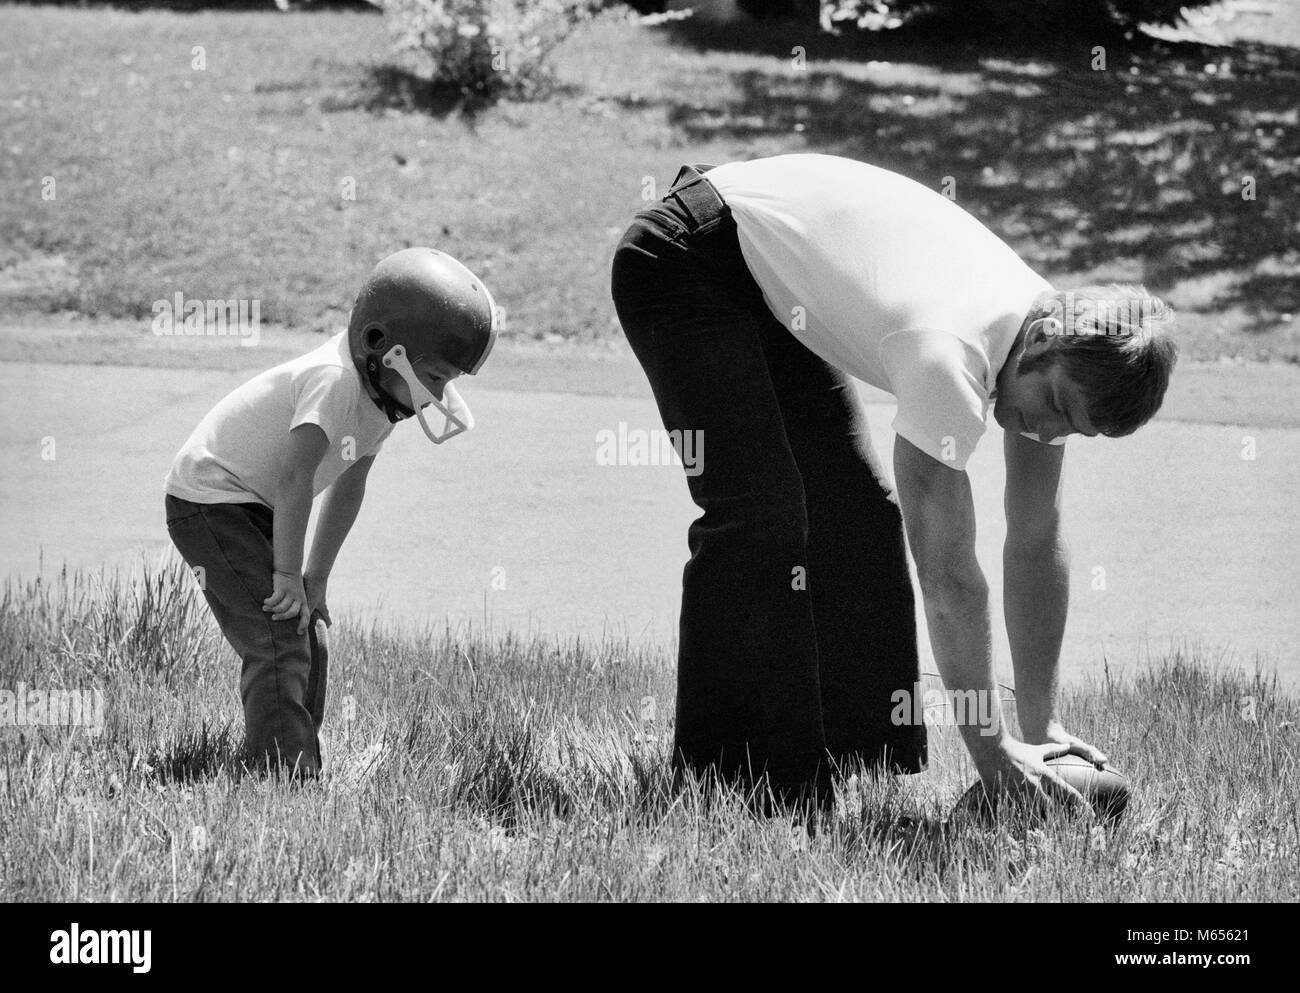 1970s FATHER PLAYING FOOTBALL ON GRASS IN WITH YOUNG SON - b25064 HAR001 HARS JUVENILE YARD BALANCE CENTER TEAMWORK - Stock Image